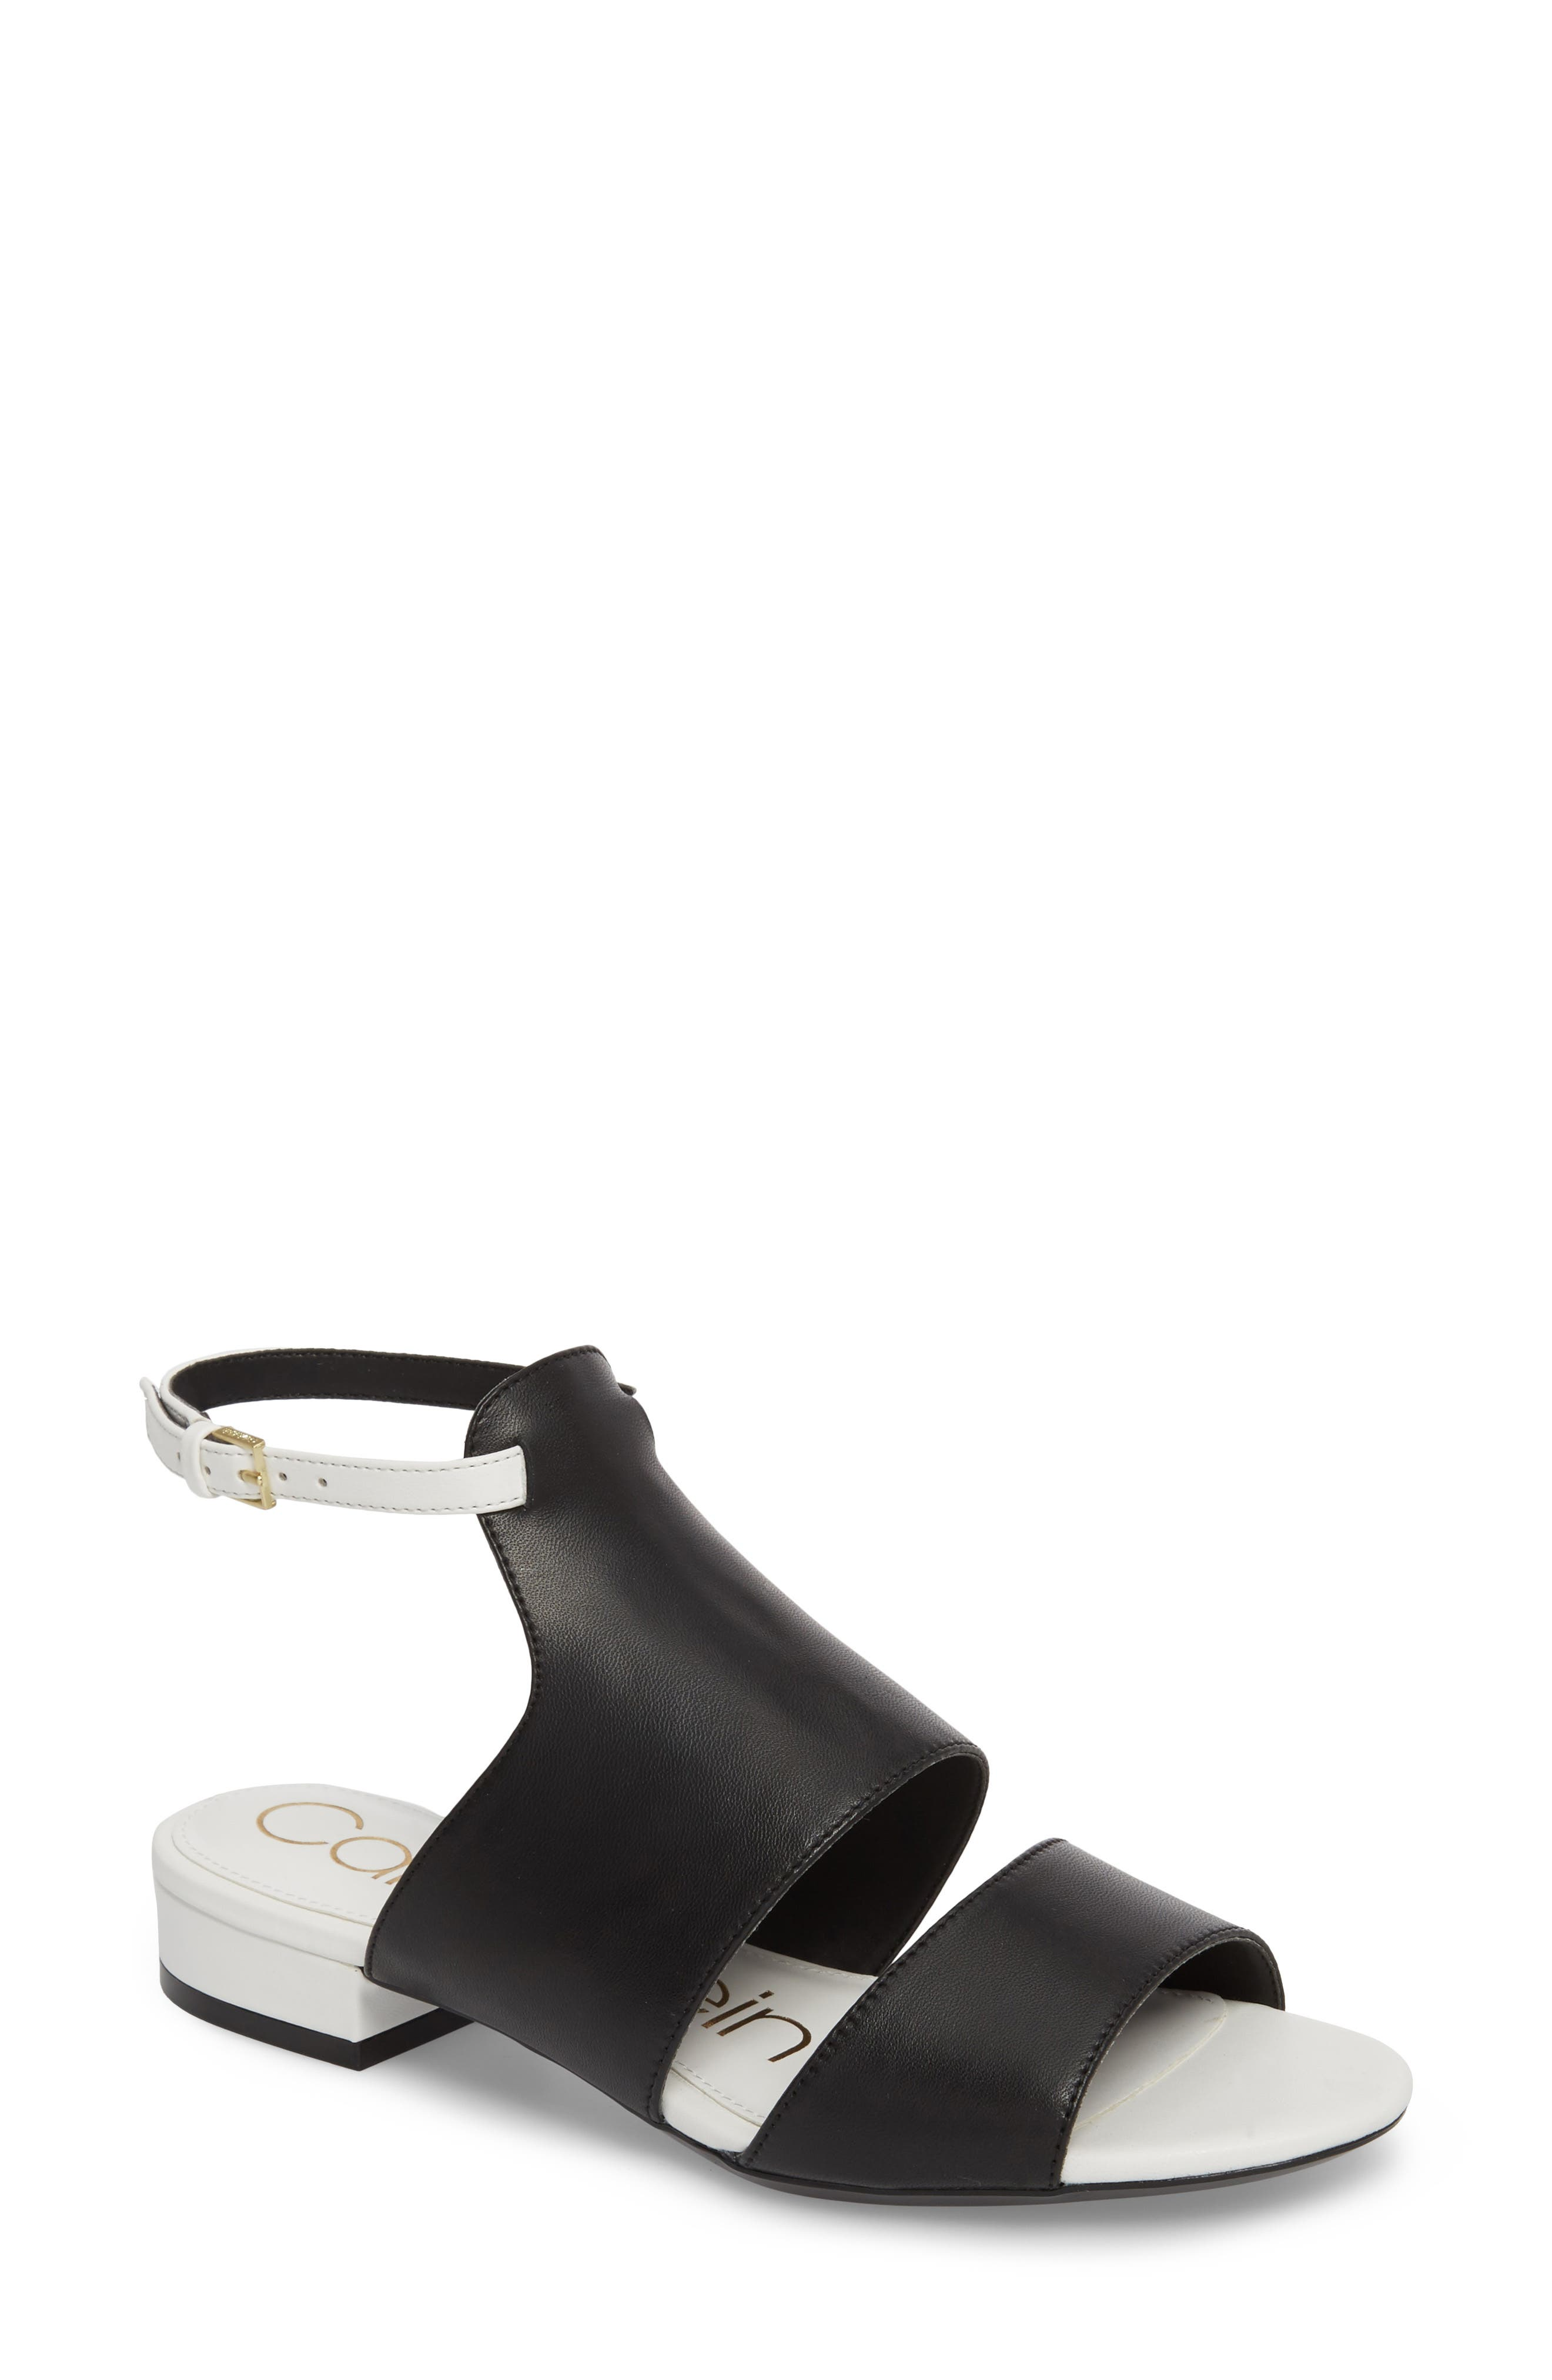 Fernarda Sandal,                         Main,                         color, Black Leather